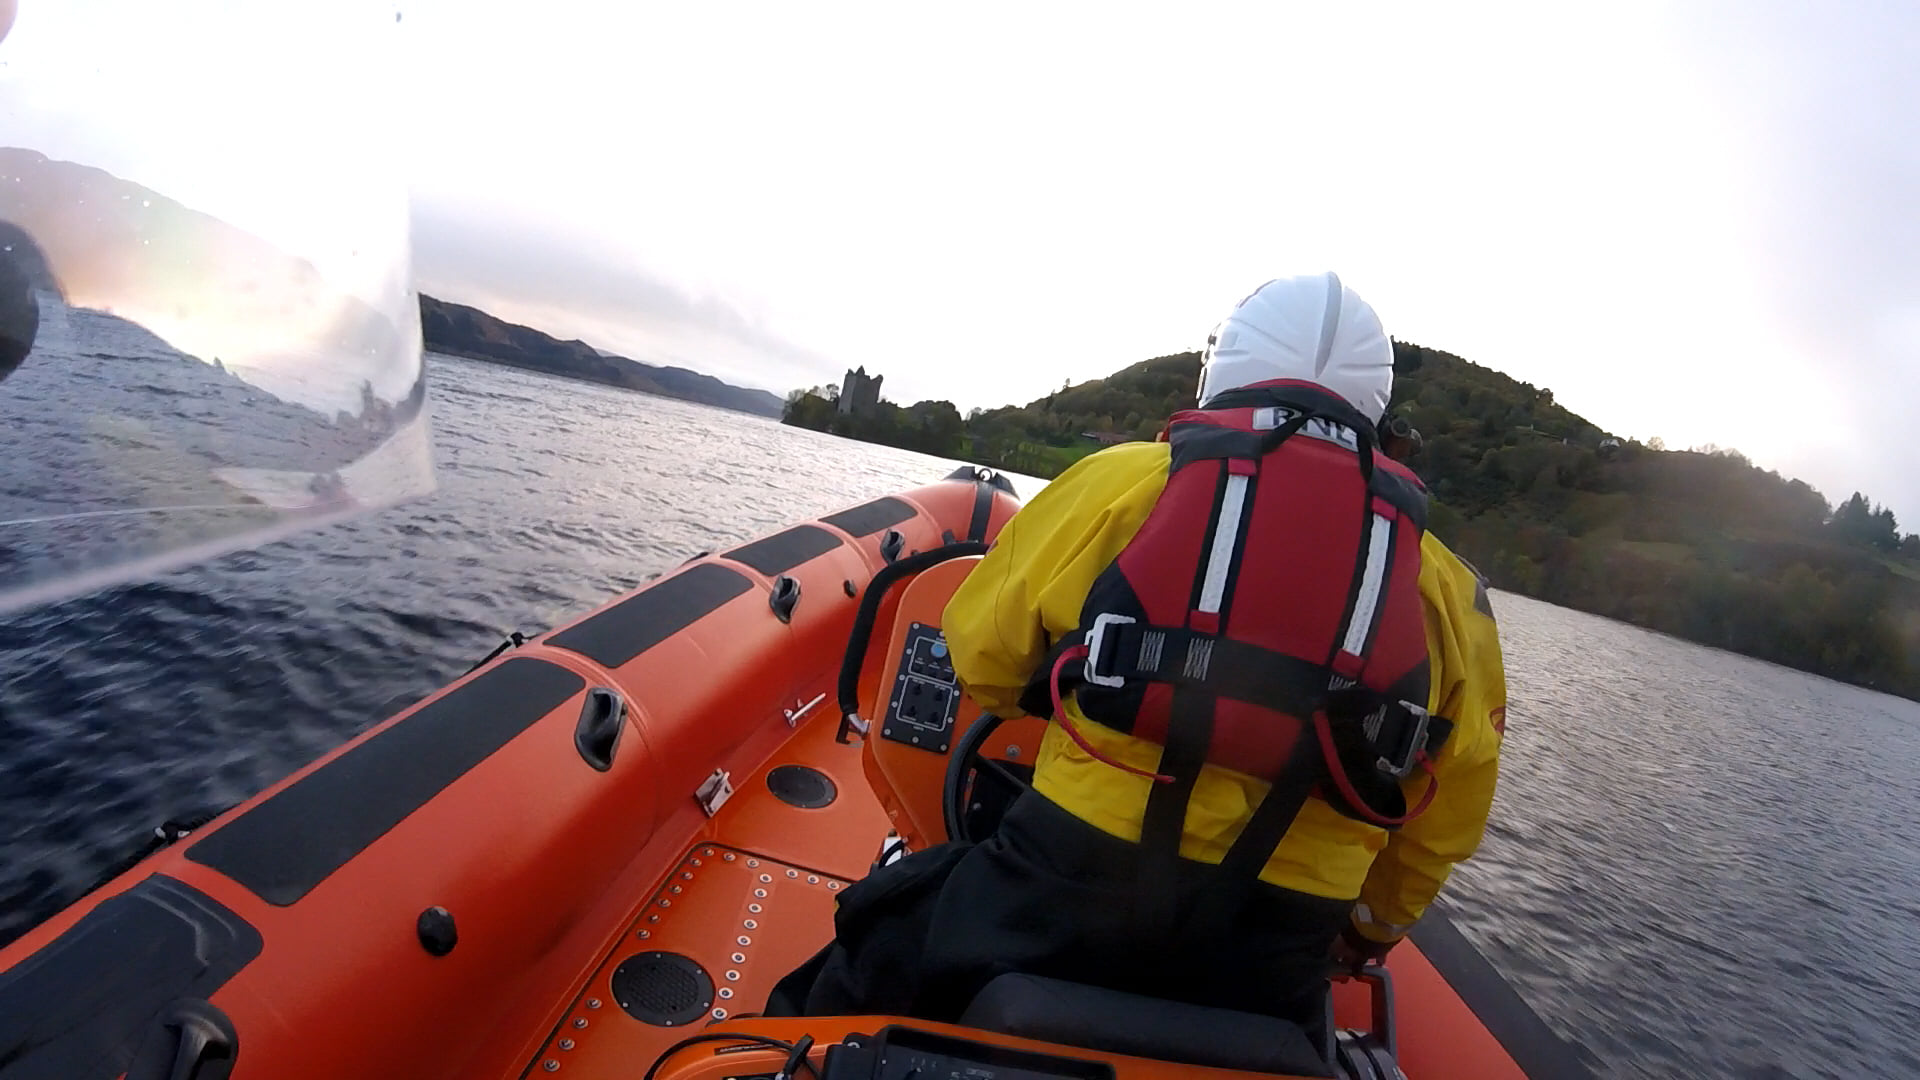 The RNLI crew from Loch Ness were sent to assist after two people were spotted in the water in Urquhart Bay